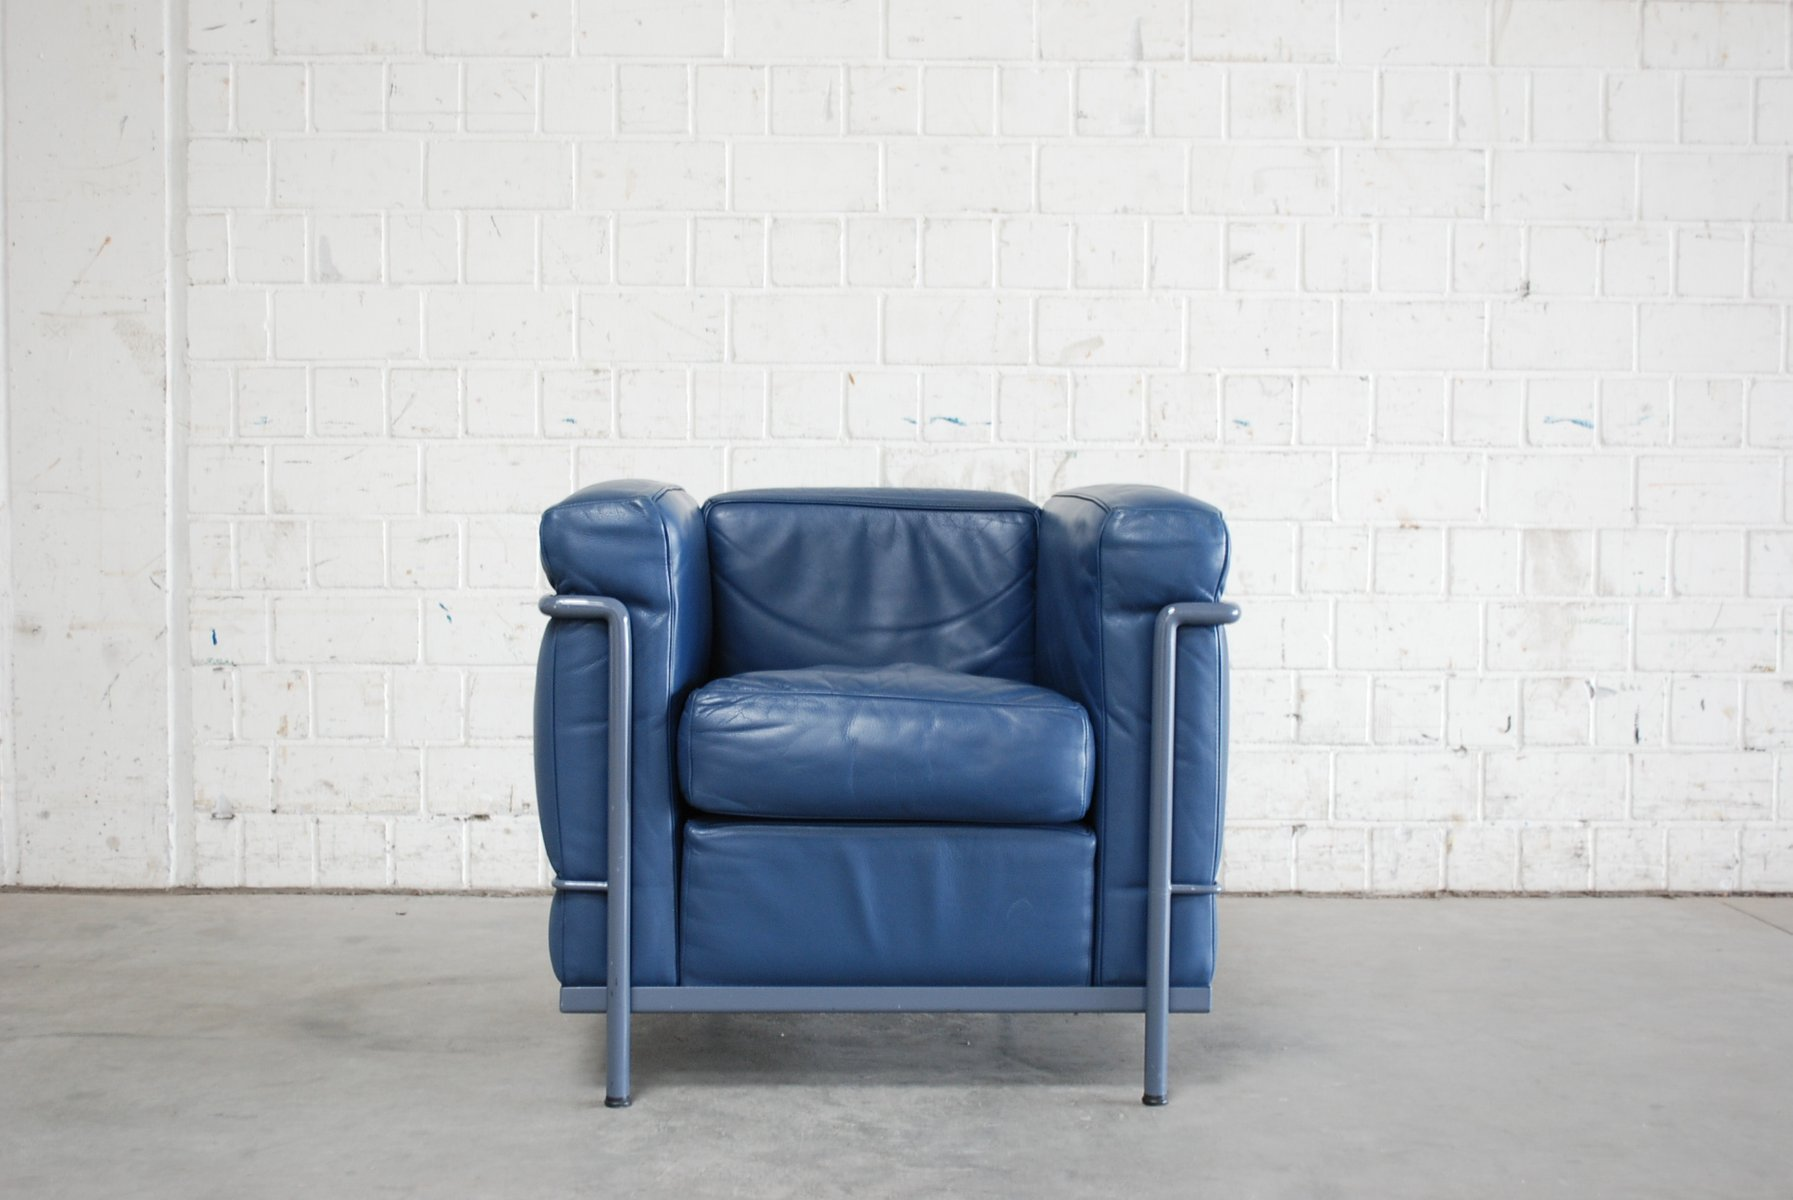 Vintage blue model lc2 leather chair by le corbusier for for Le corbusier lc2 nachbau